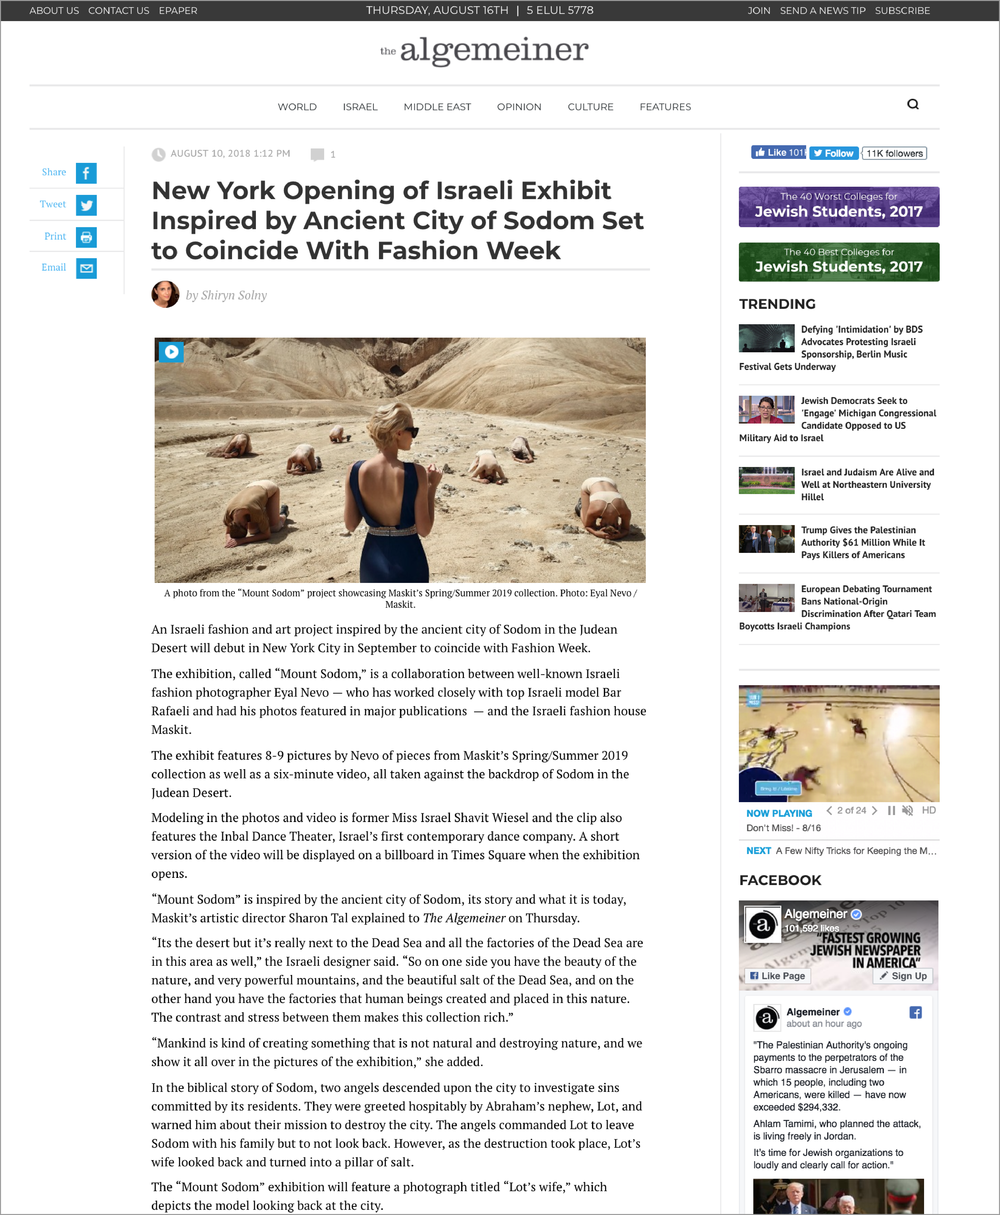 The Algemeiner  New York Opening of Israeli Exhibit Inspired by Ancient City of Sodom Set to Coincide With Fashion Week. (August 10, 2018)